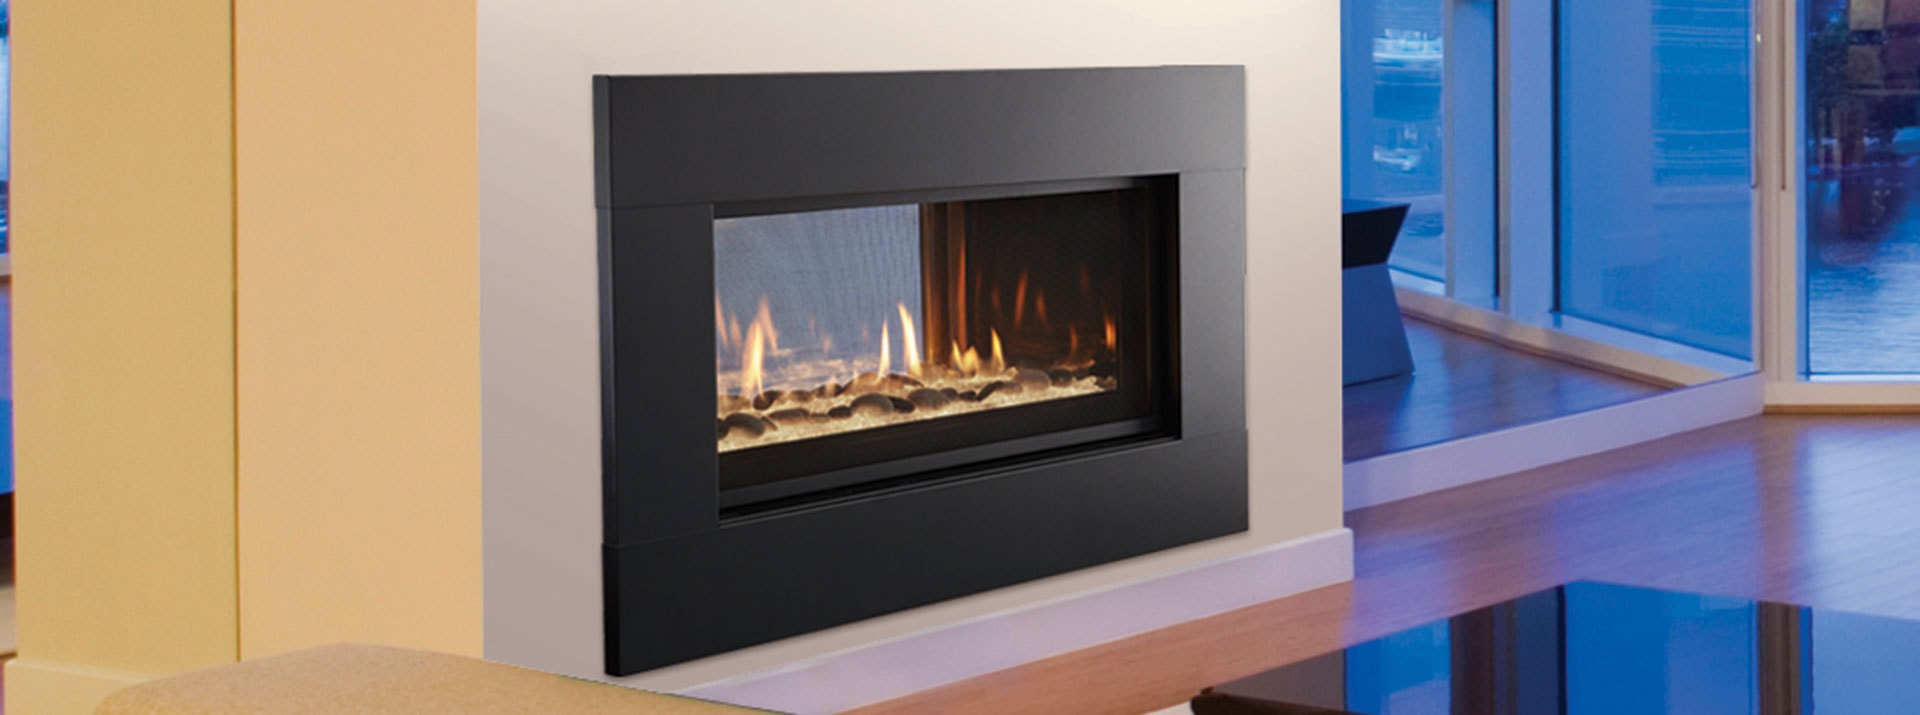 htm reveal fireplace p monessen insert vent direct gas